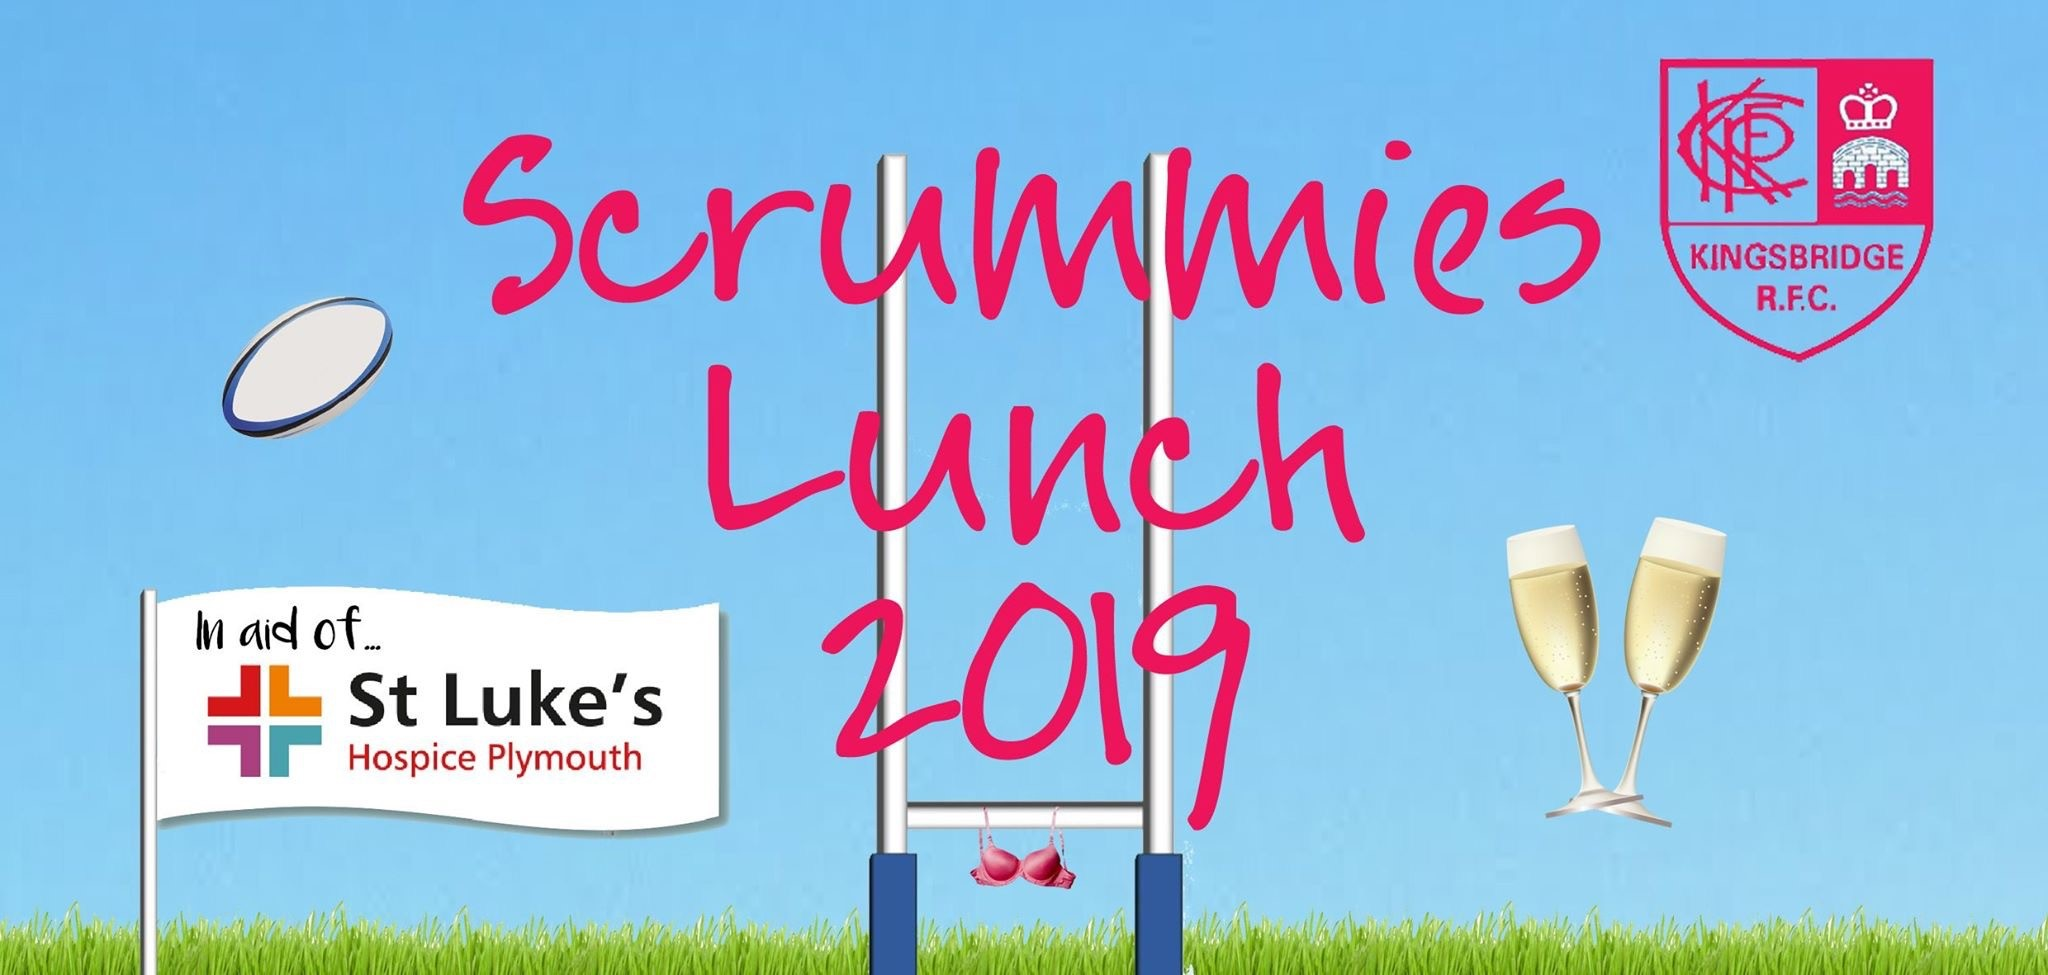 Scrummies lunch 2019 advert